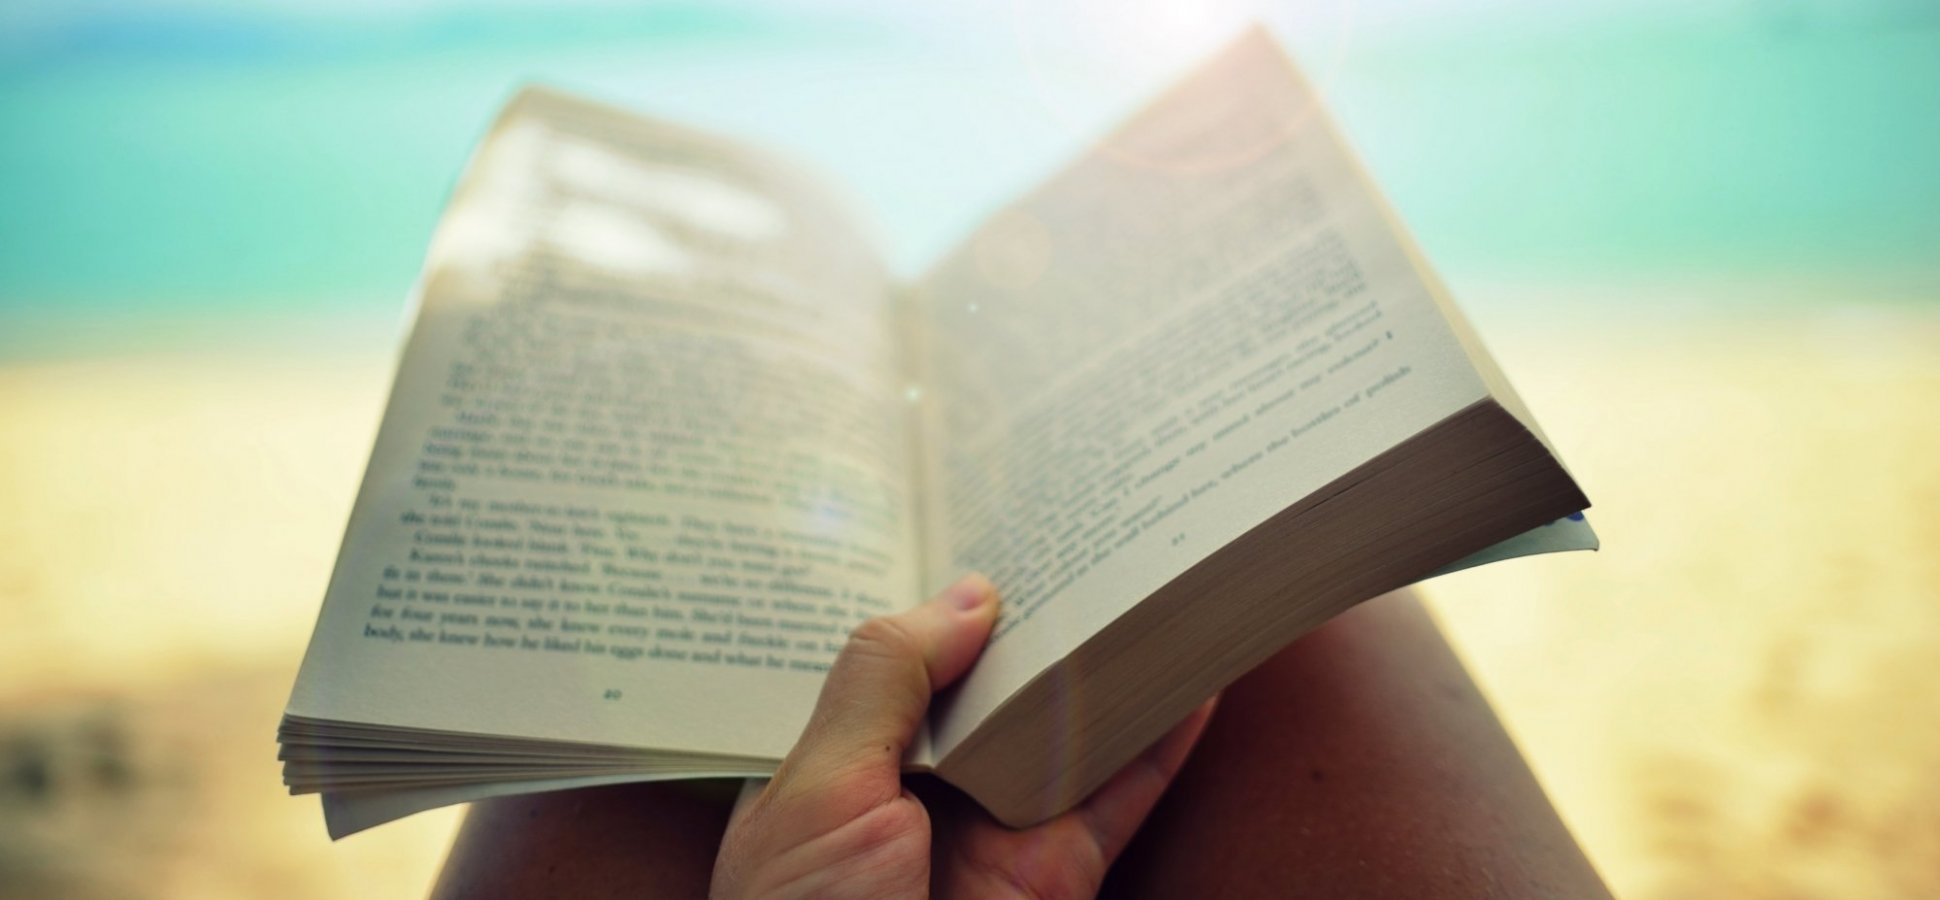 These Are the 5 Best Beach Reads of the Summer, According to Amazon